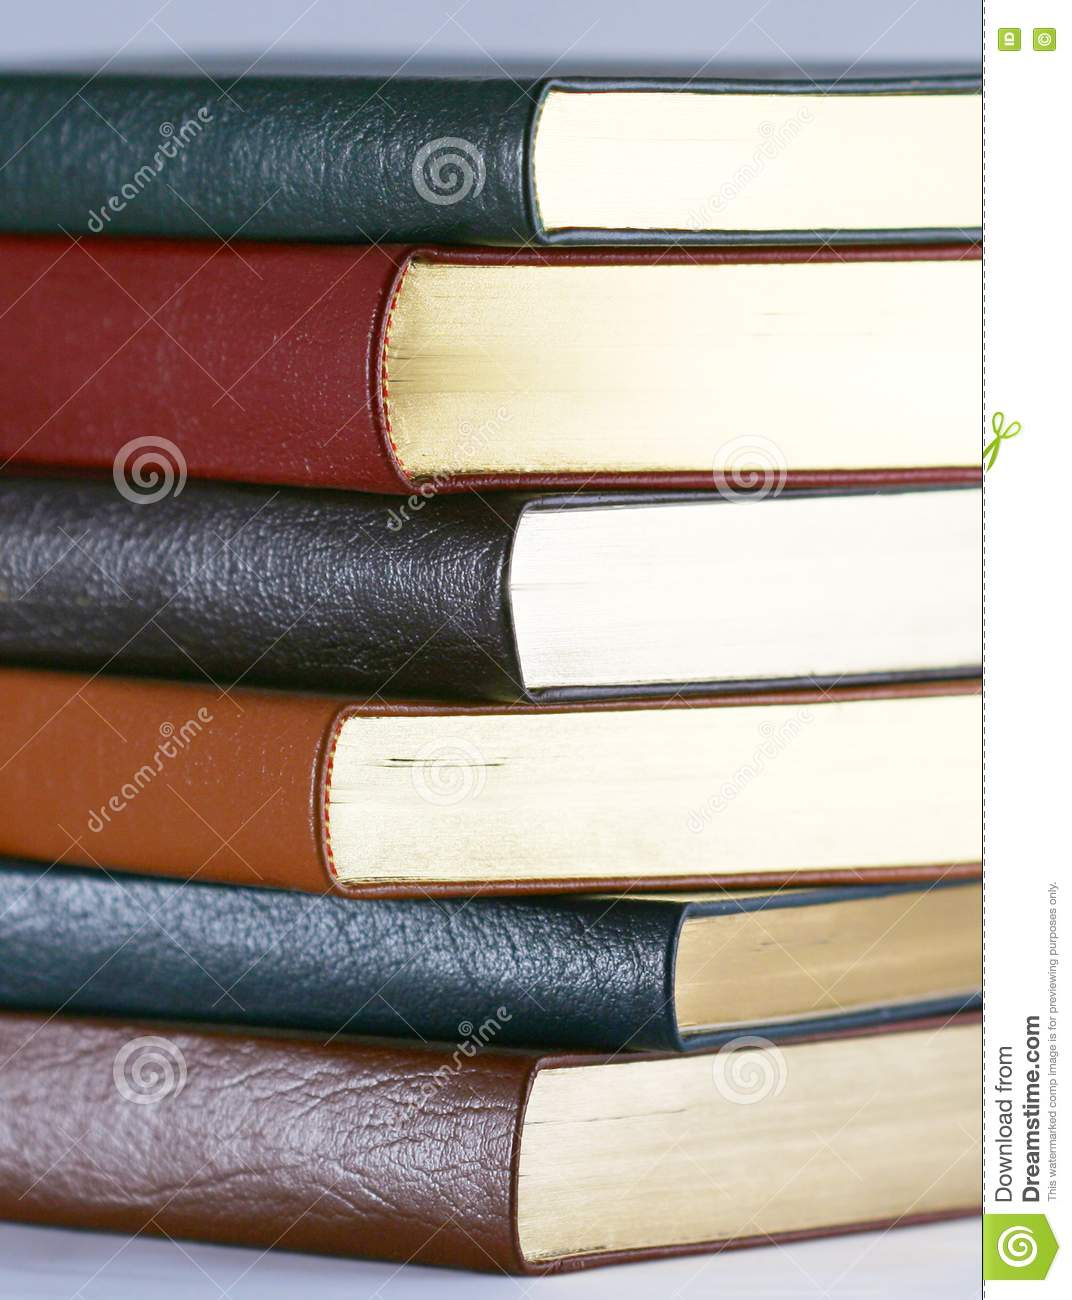 leather bound book royalty - photo #19